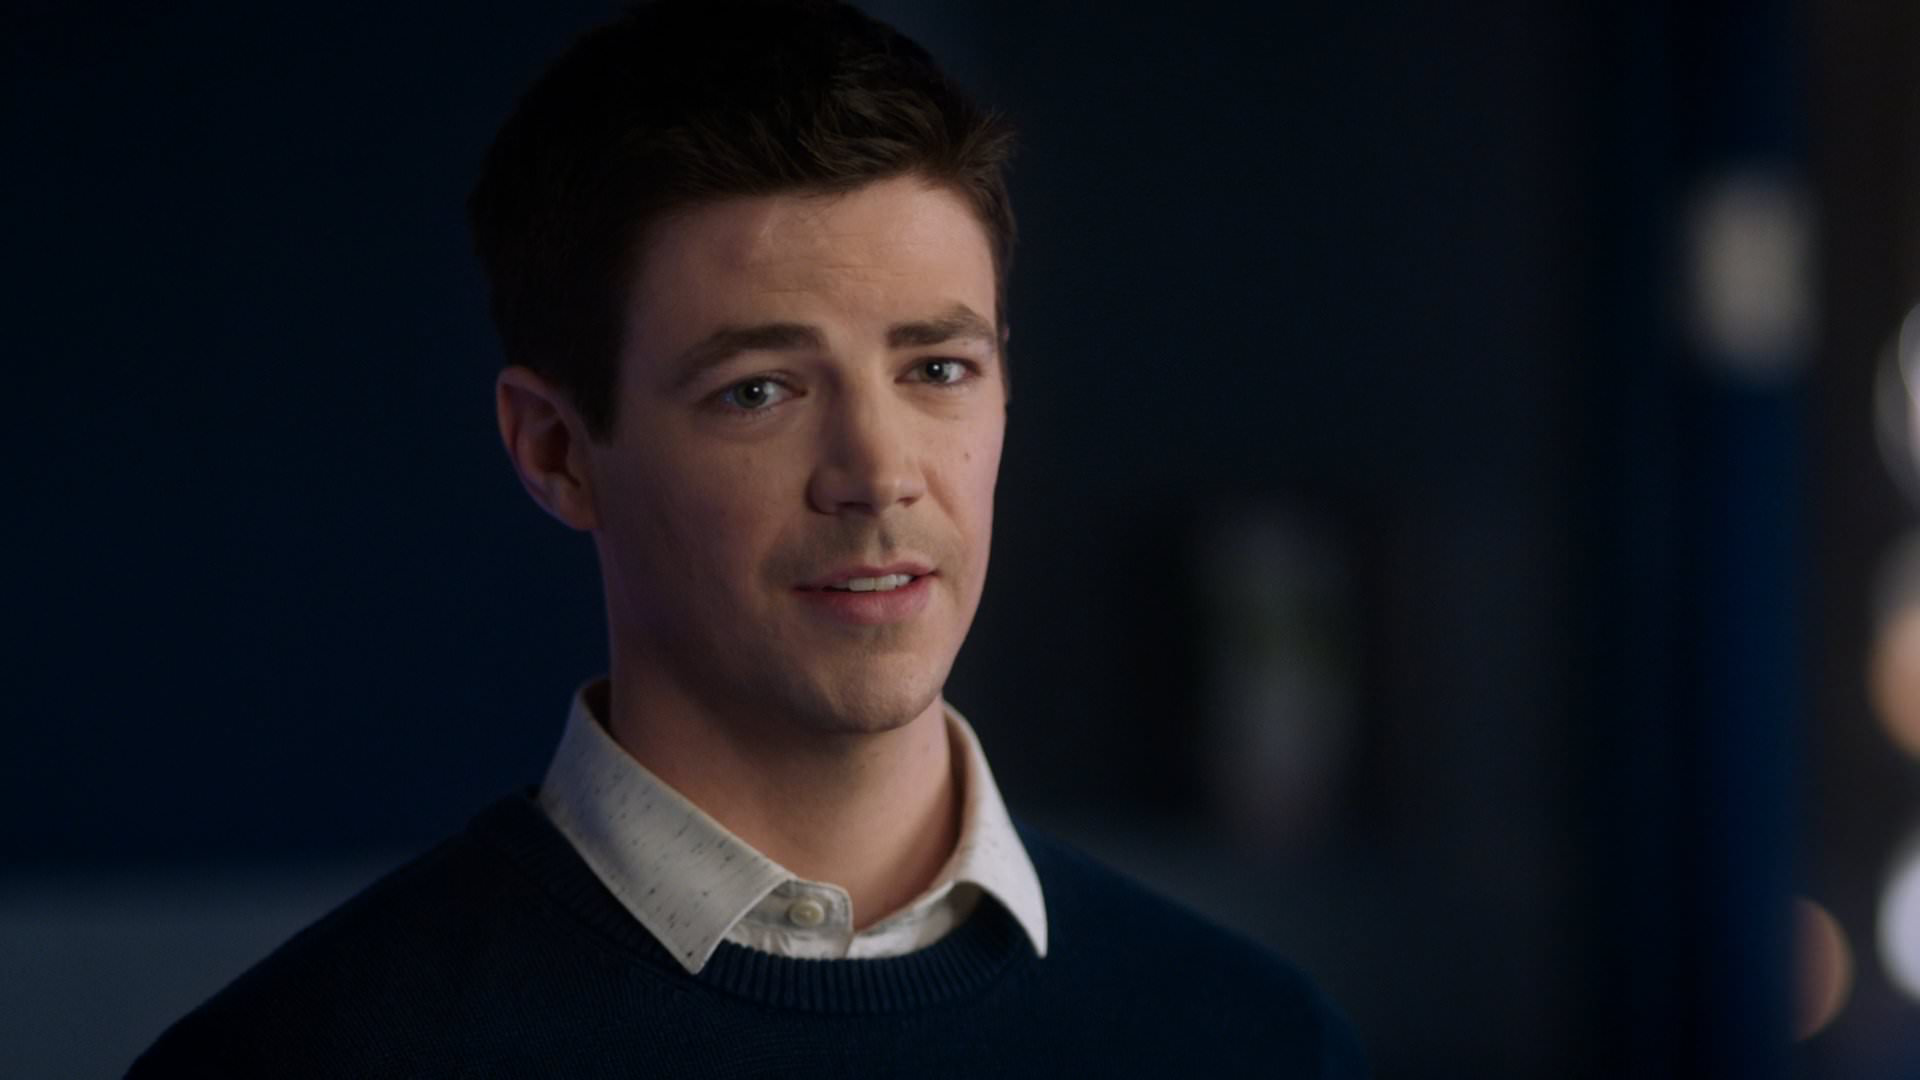 Barry Allen (Earth-1) | Arrowverse Wiki | FANDOM powered by